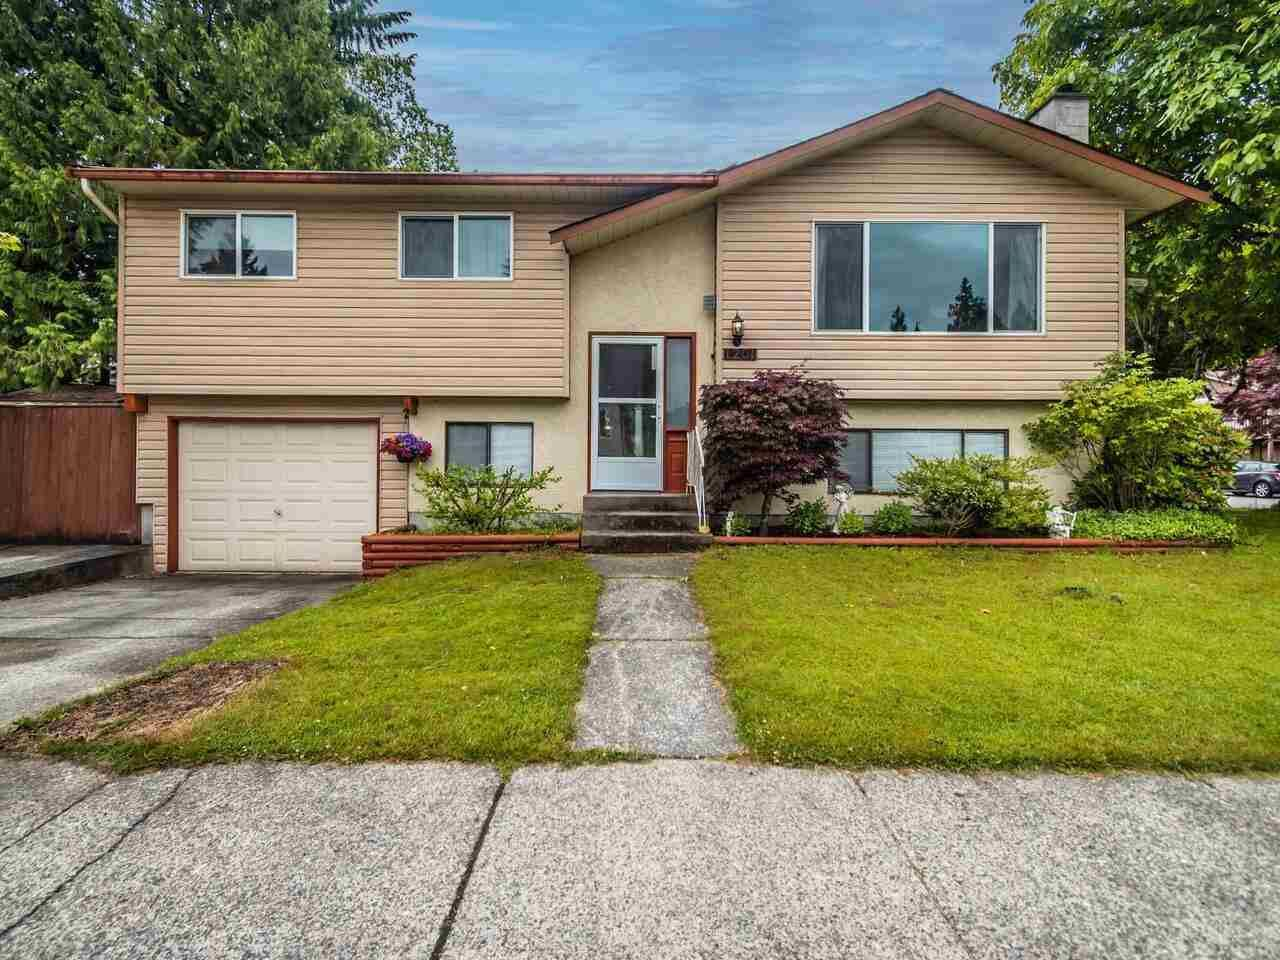 Main Photo: 1201 HORNBY Street in Coquitlam: New Horizons House for sale : MLS®# R2590649